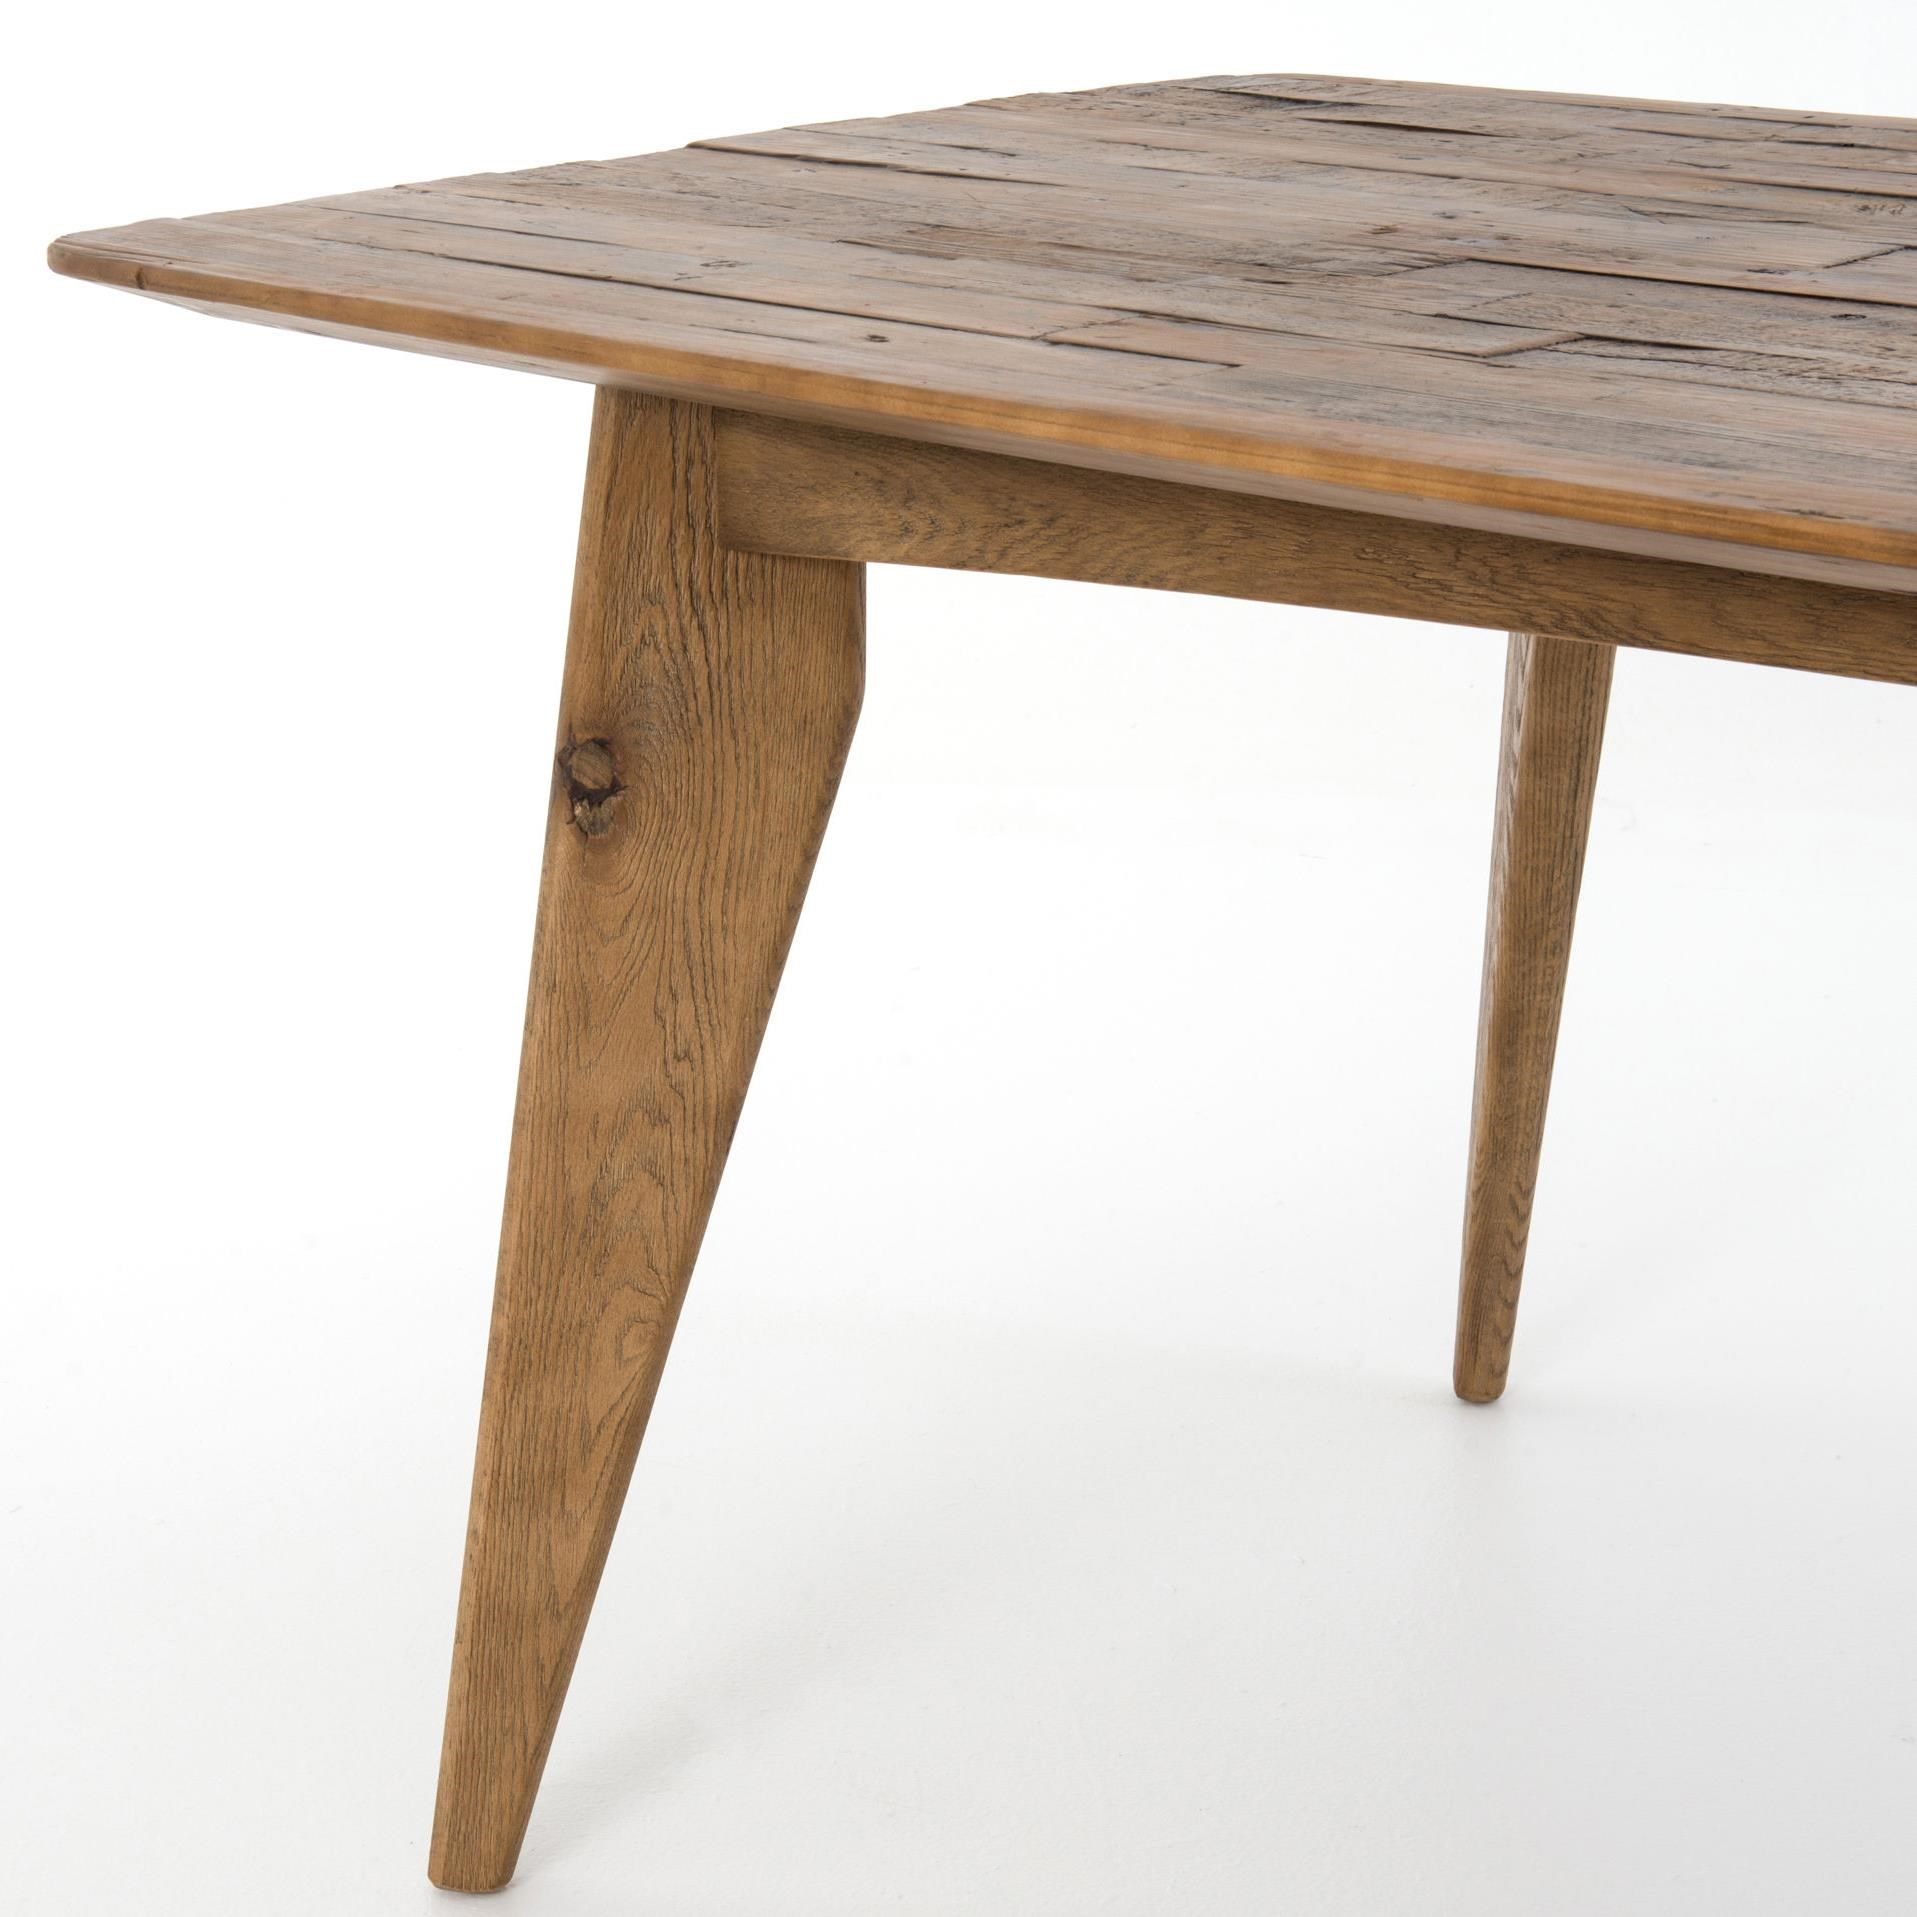 Four Hands Hughes Danny Small Dining Table With Splayed Legs